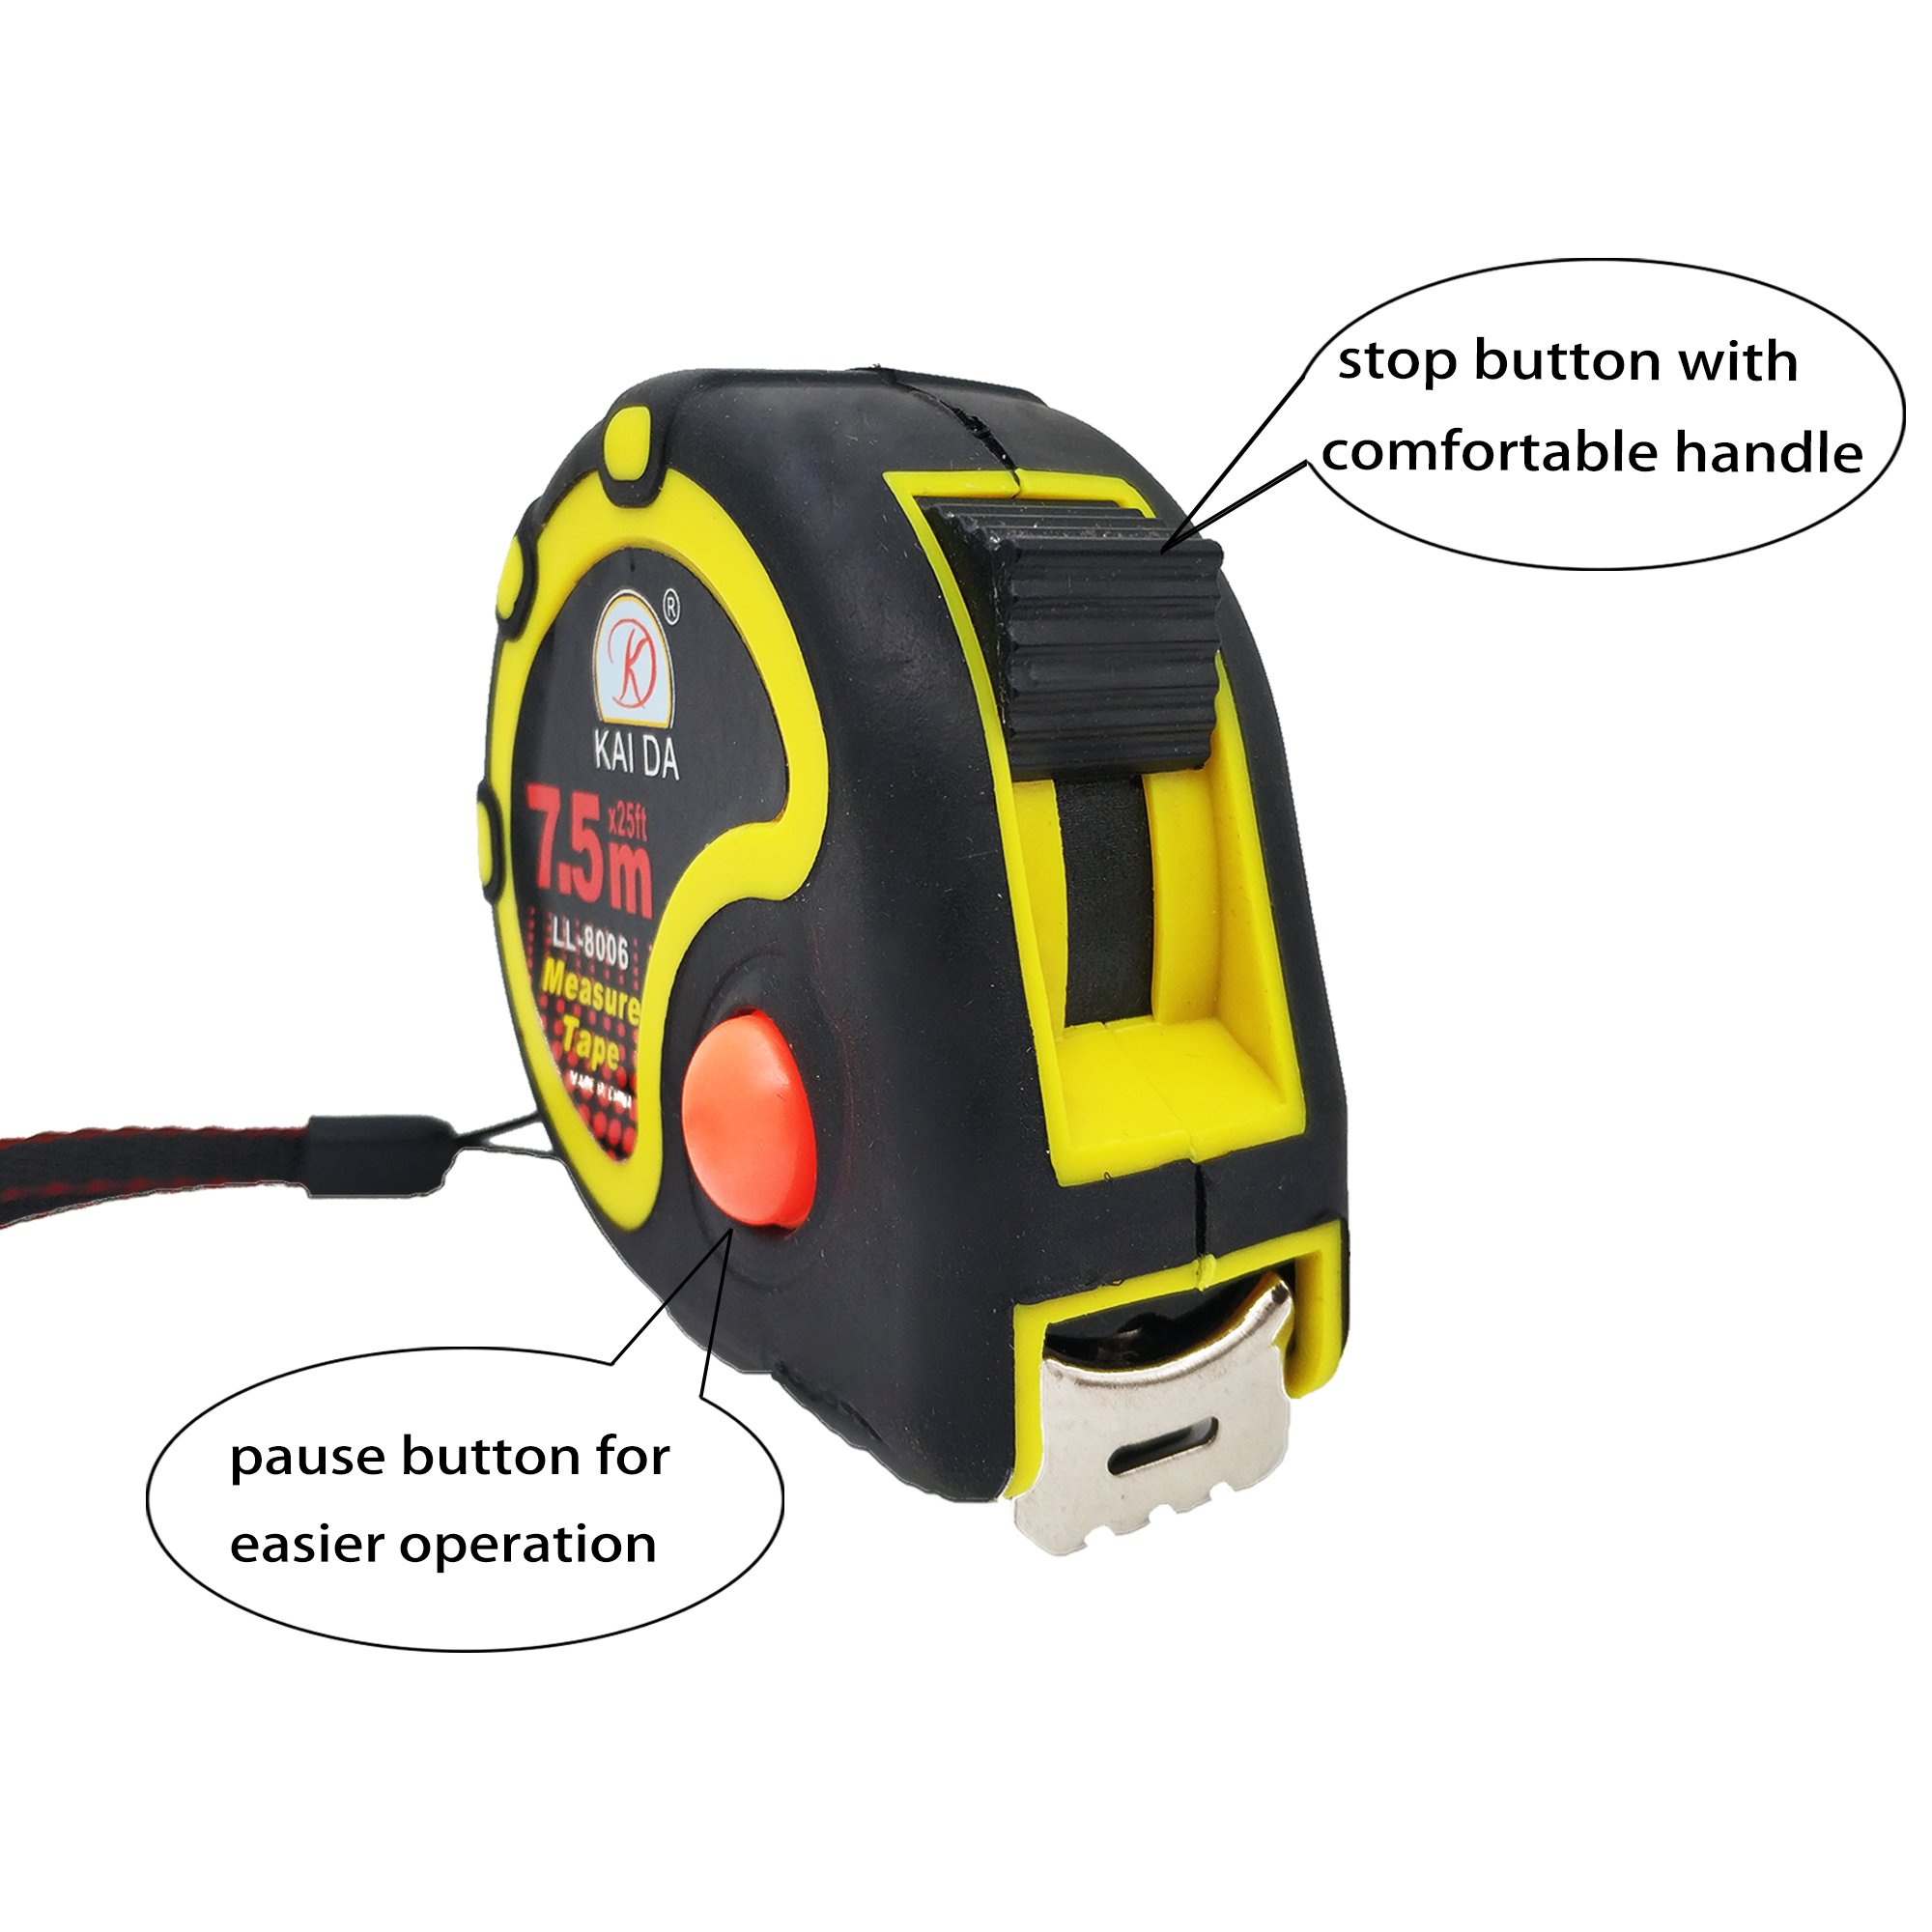 JSHOTS Tape Measure,Inches And Metric Measurement 25ft(7.5m), Tape Measure Retractable,Measuring Tape,Strong Belt Clip,Impact Resistant Rubber Covered Case by JSHOTS (Image #2)